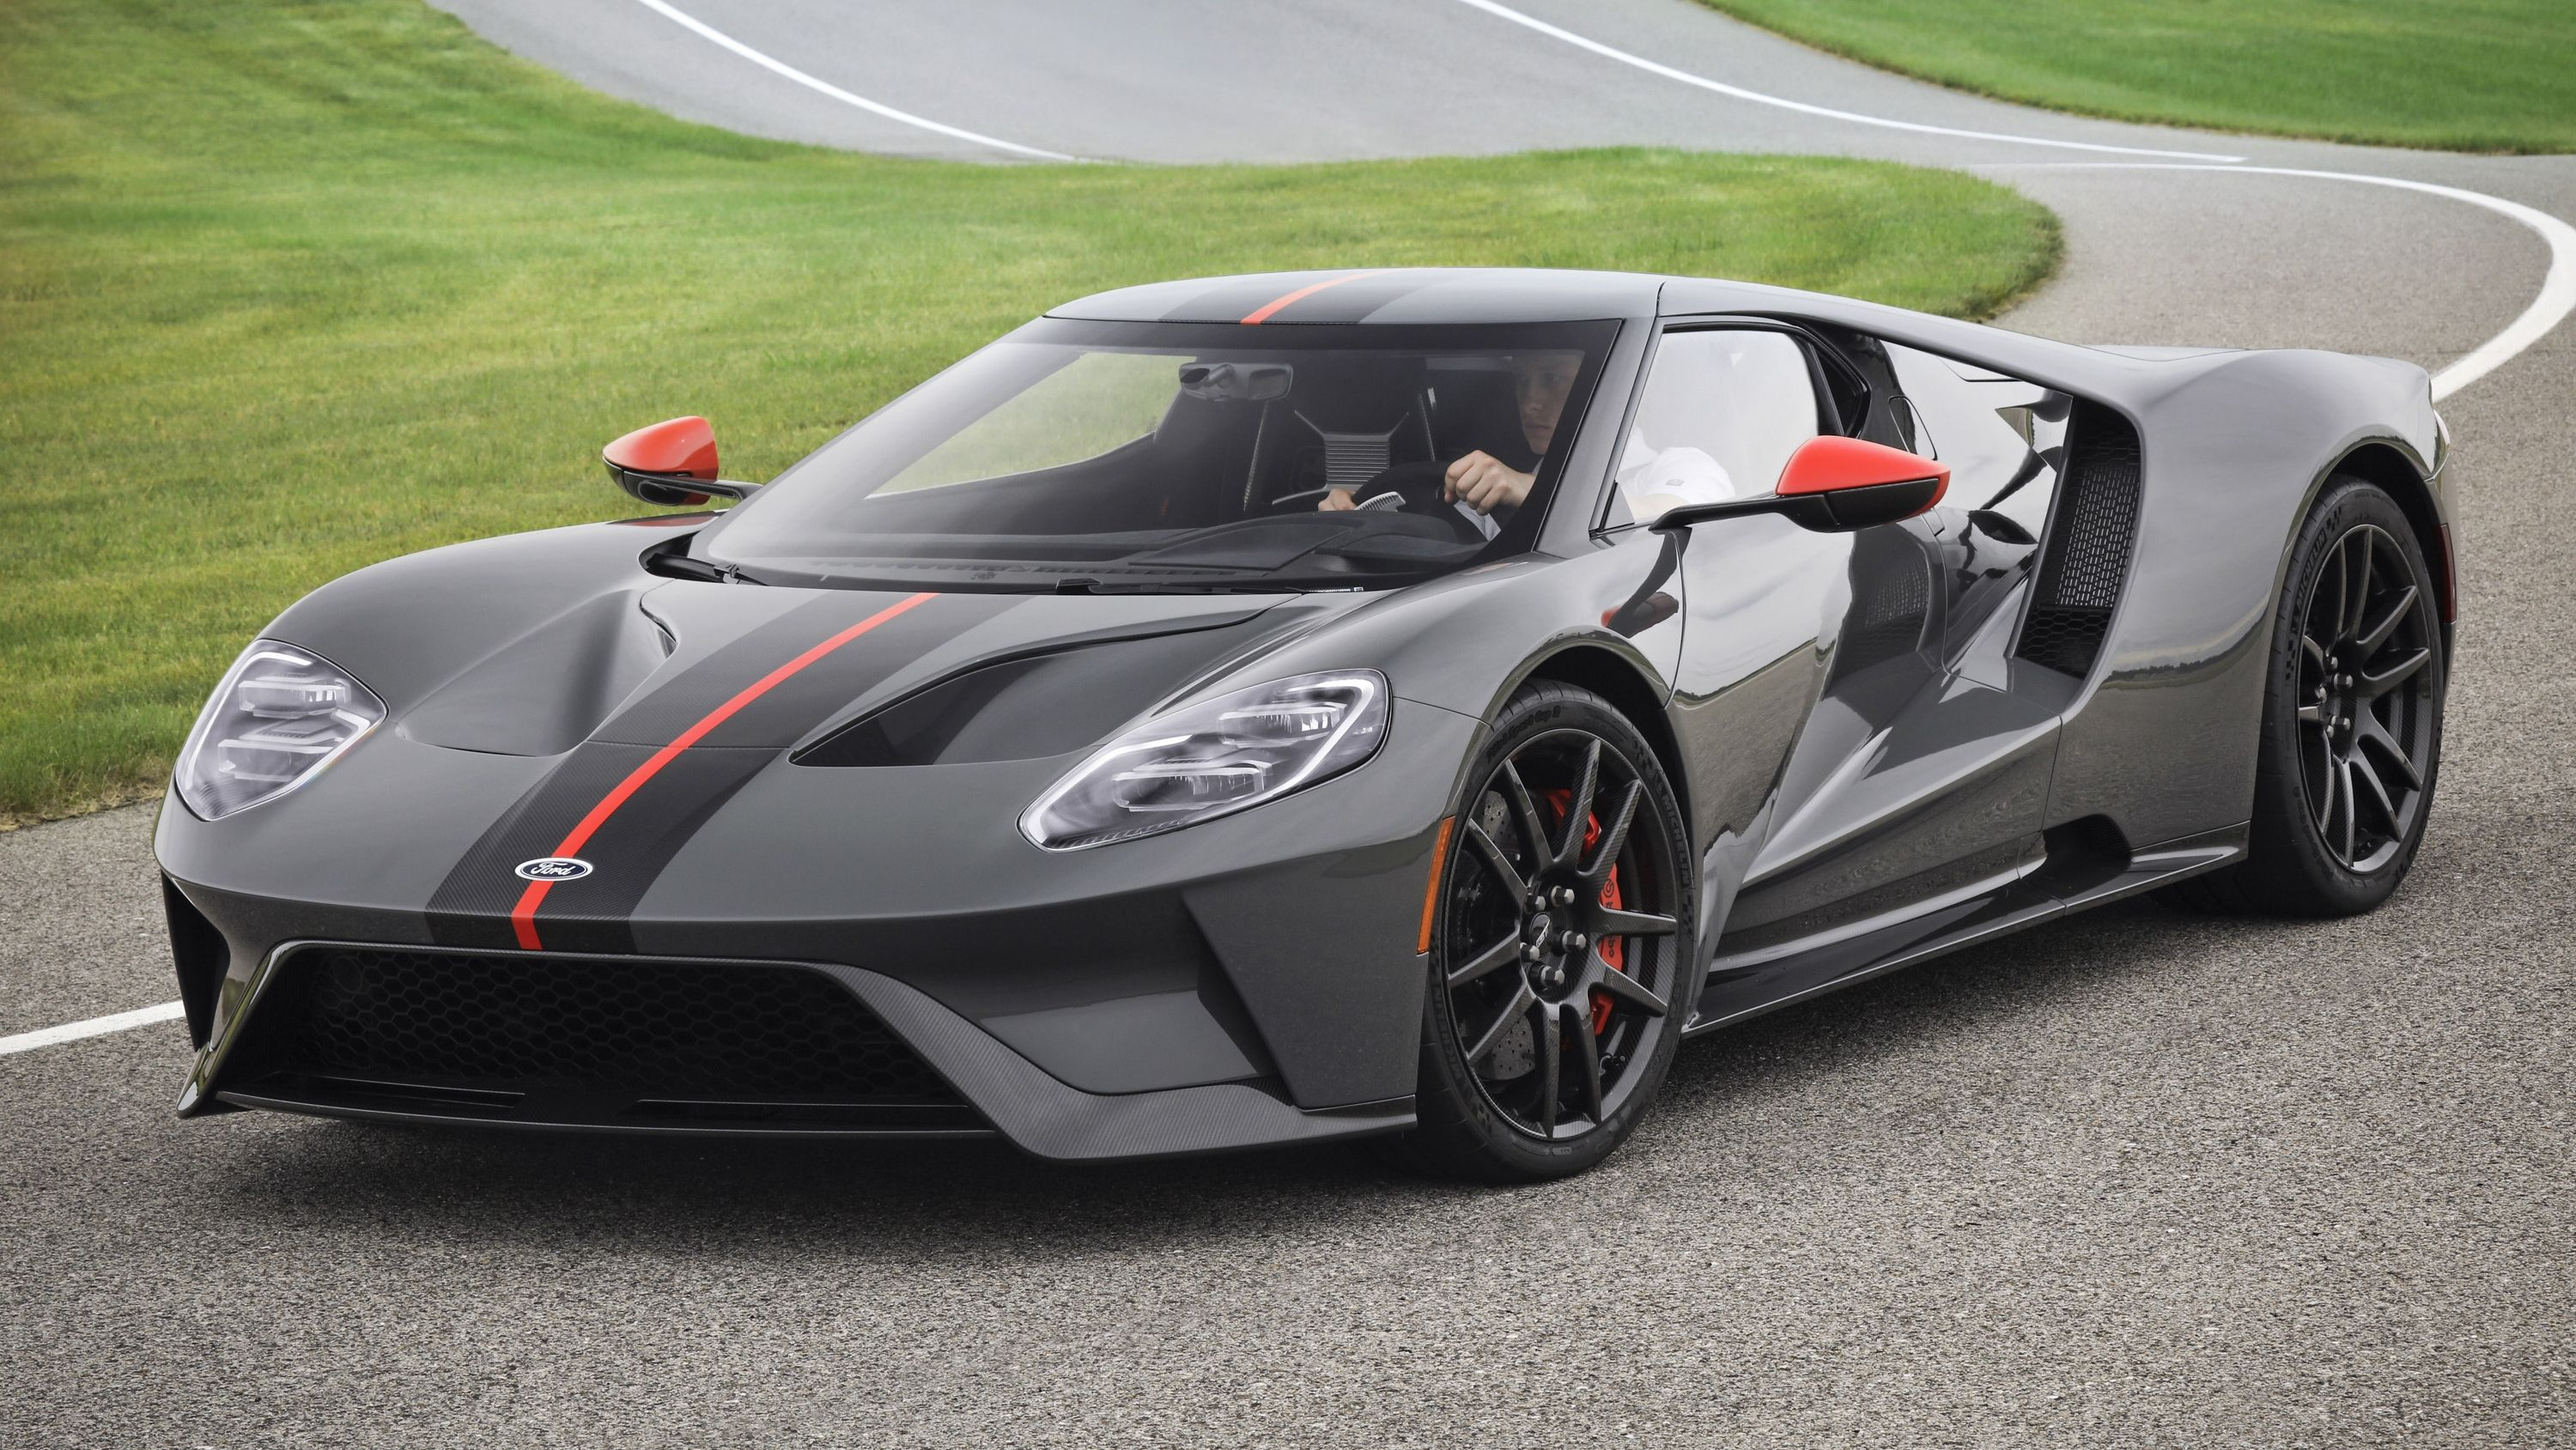 2019 Ford Gt Carbon Series Top Speed Ford Gt Ford Trucks